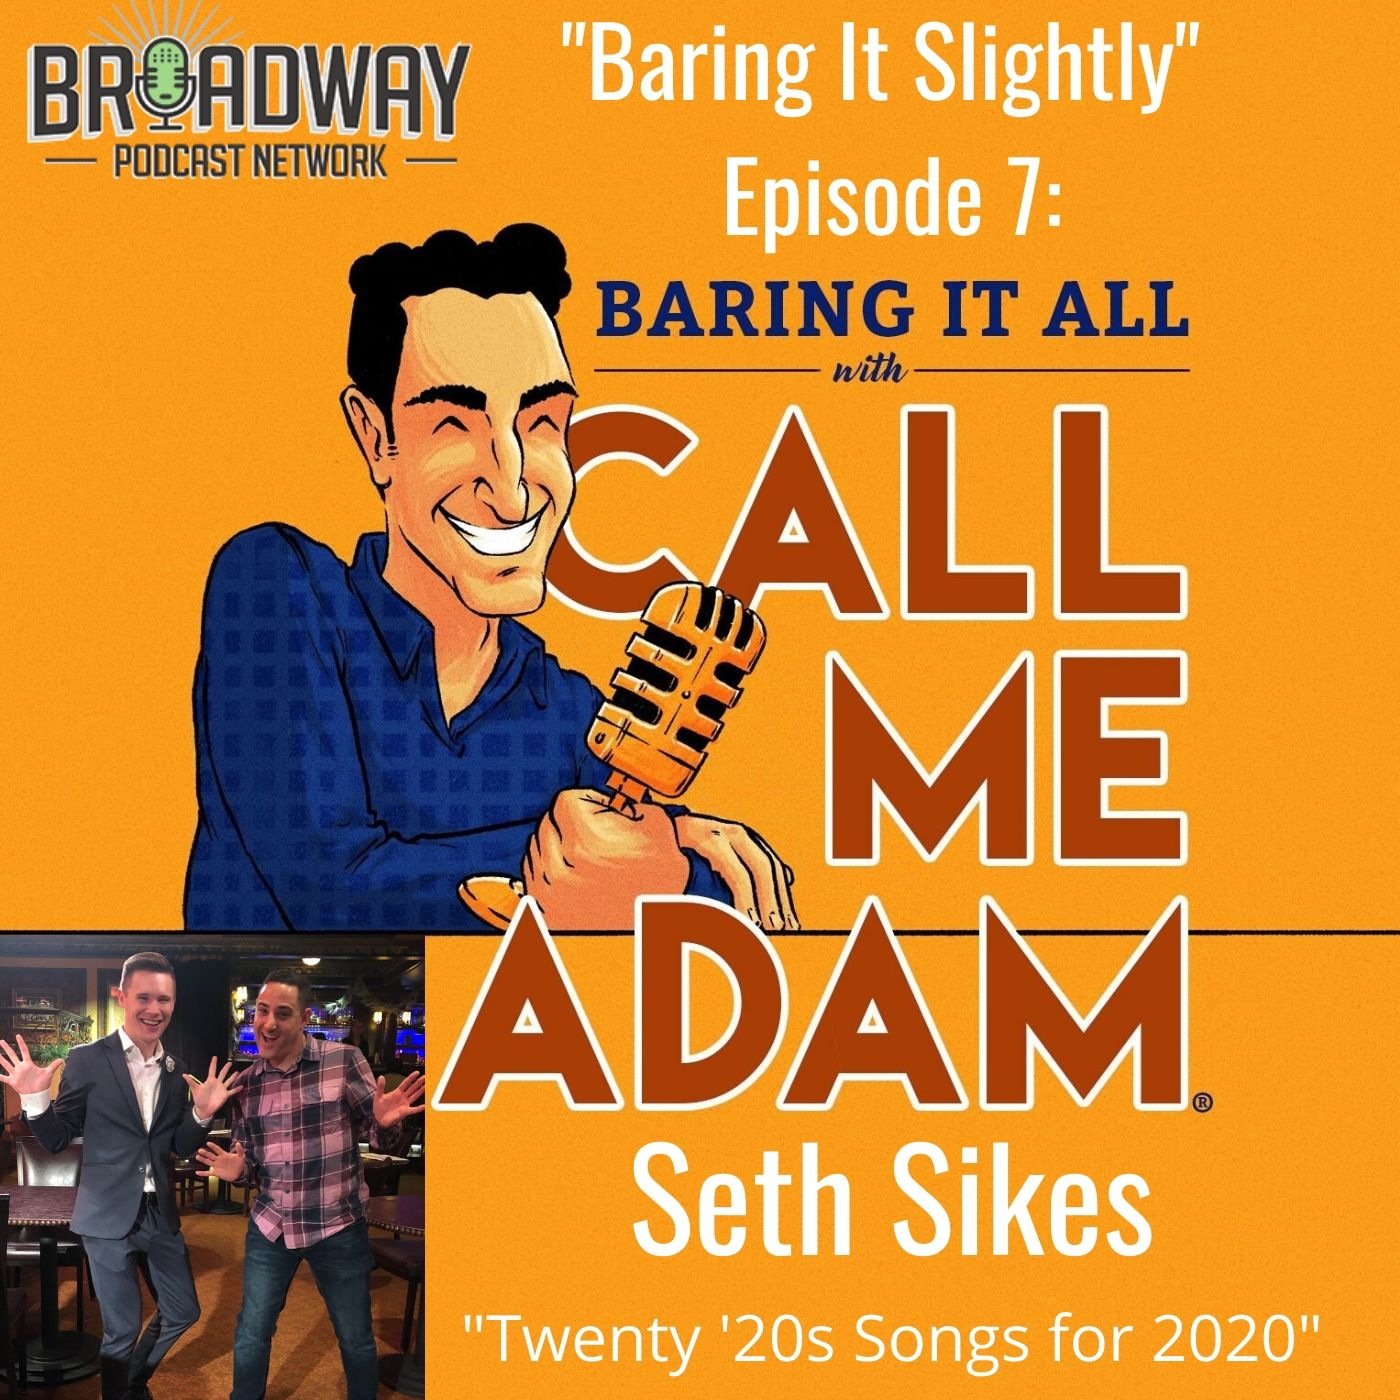 Baring It All With Call Me Adam Baring It Slighty Ep 7 Seth Sikes 20 Songs